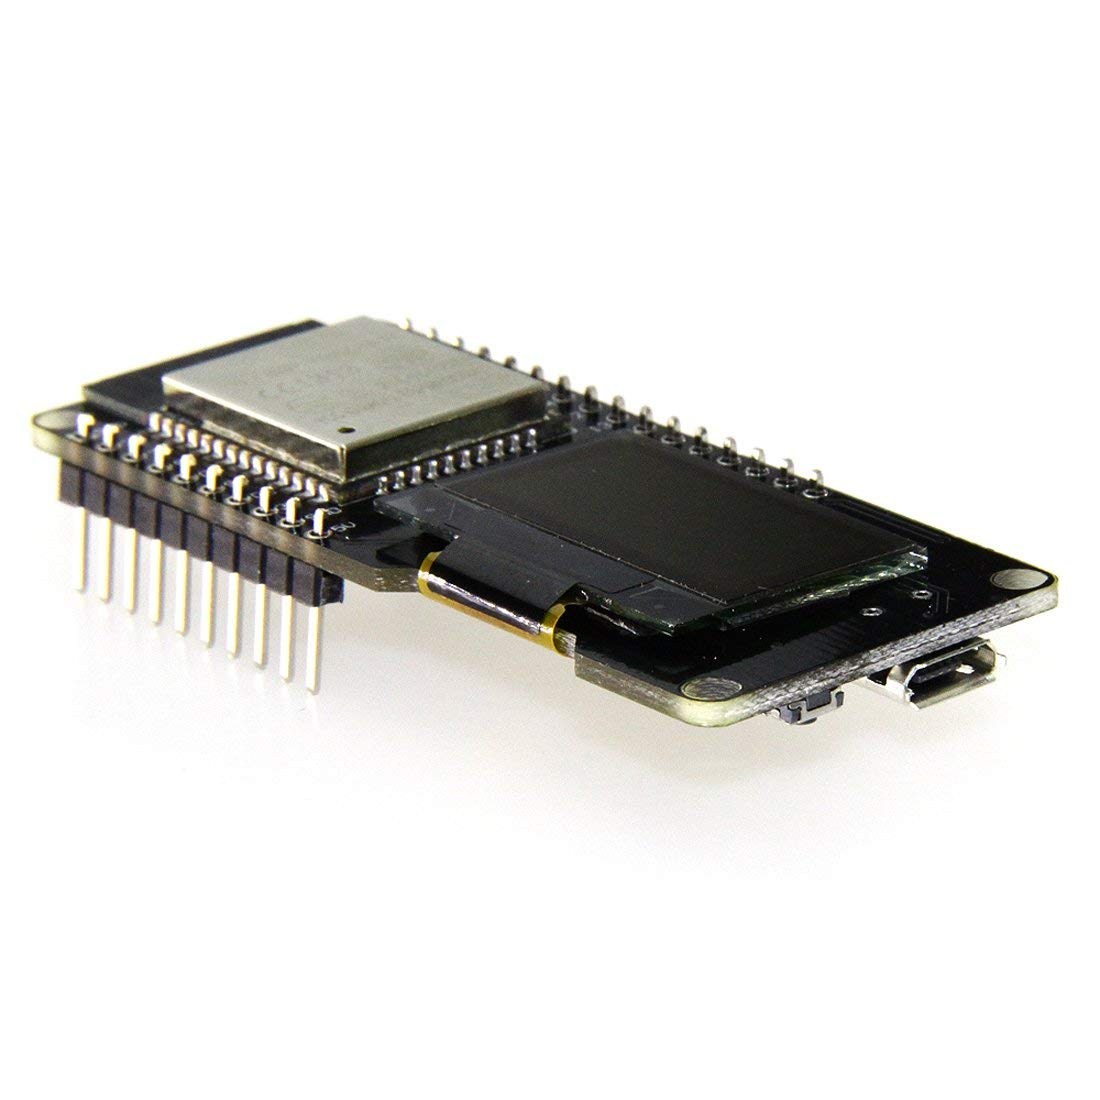 "ESP32 OLED Development Board 0.96"" OLED Display ESP-WROOM-32 ESP32 ESP-32 WIFI-BT for Arduino AP ST"